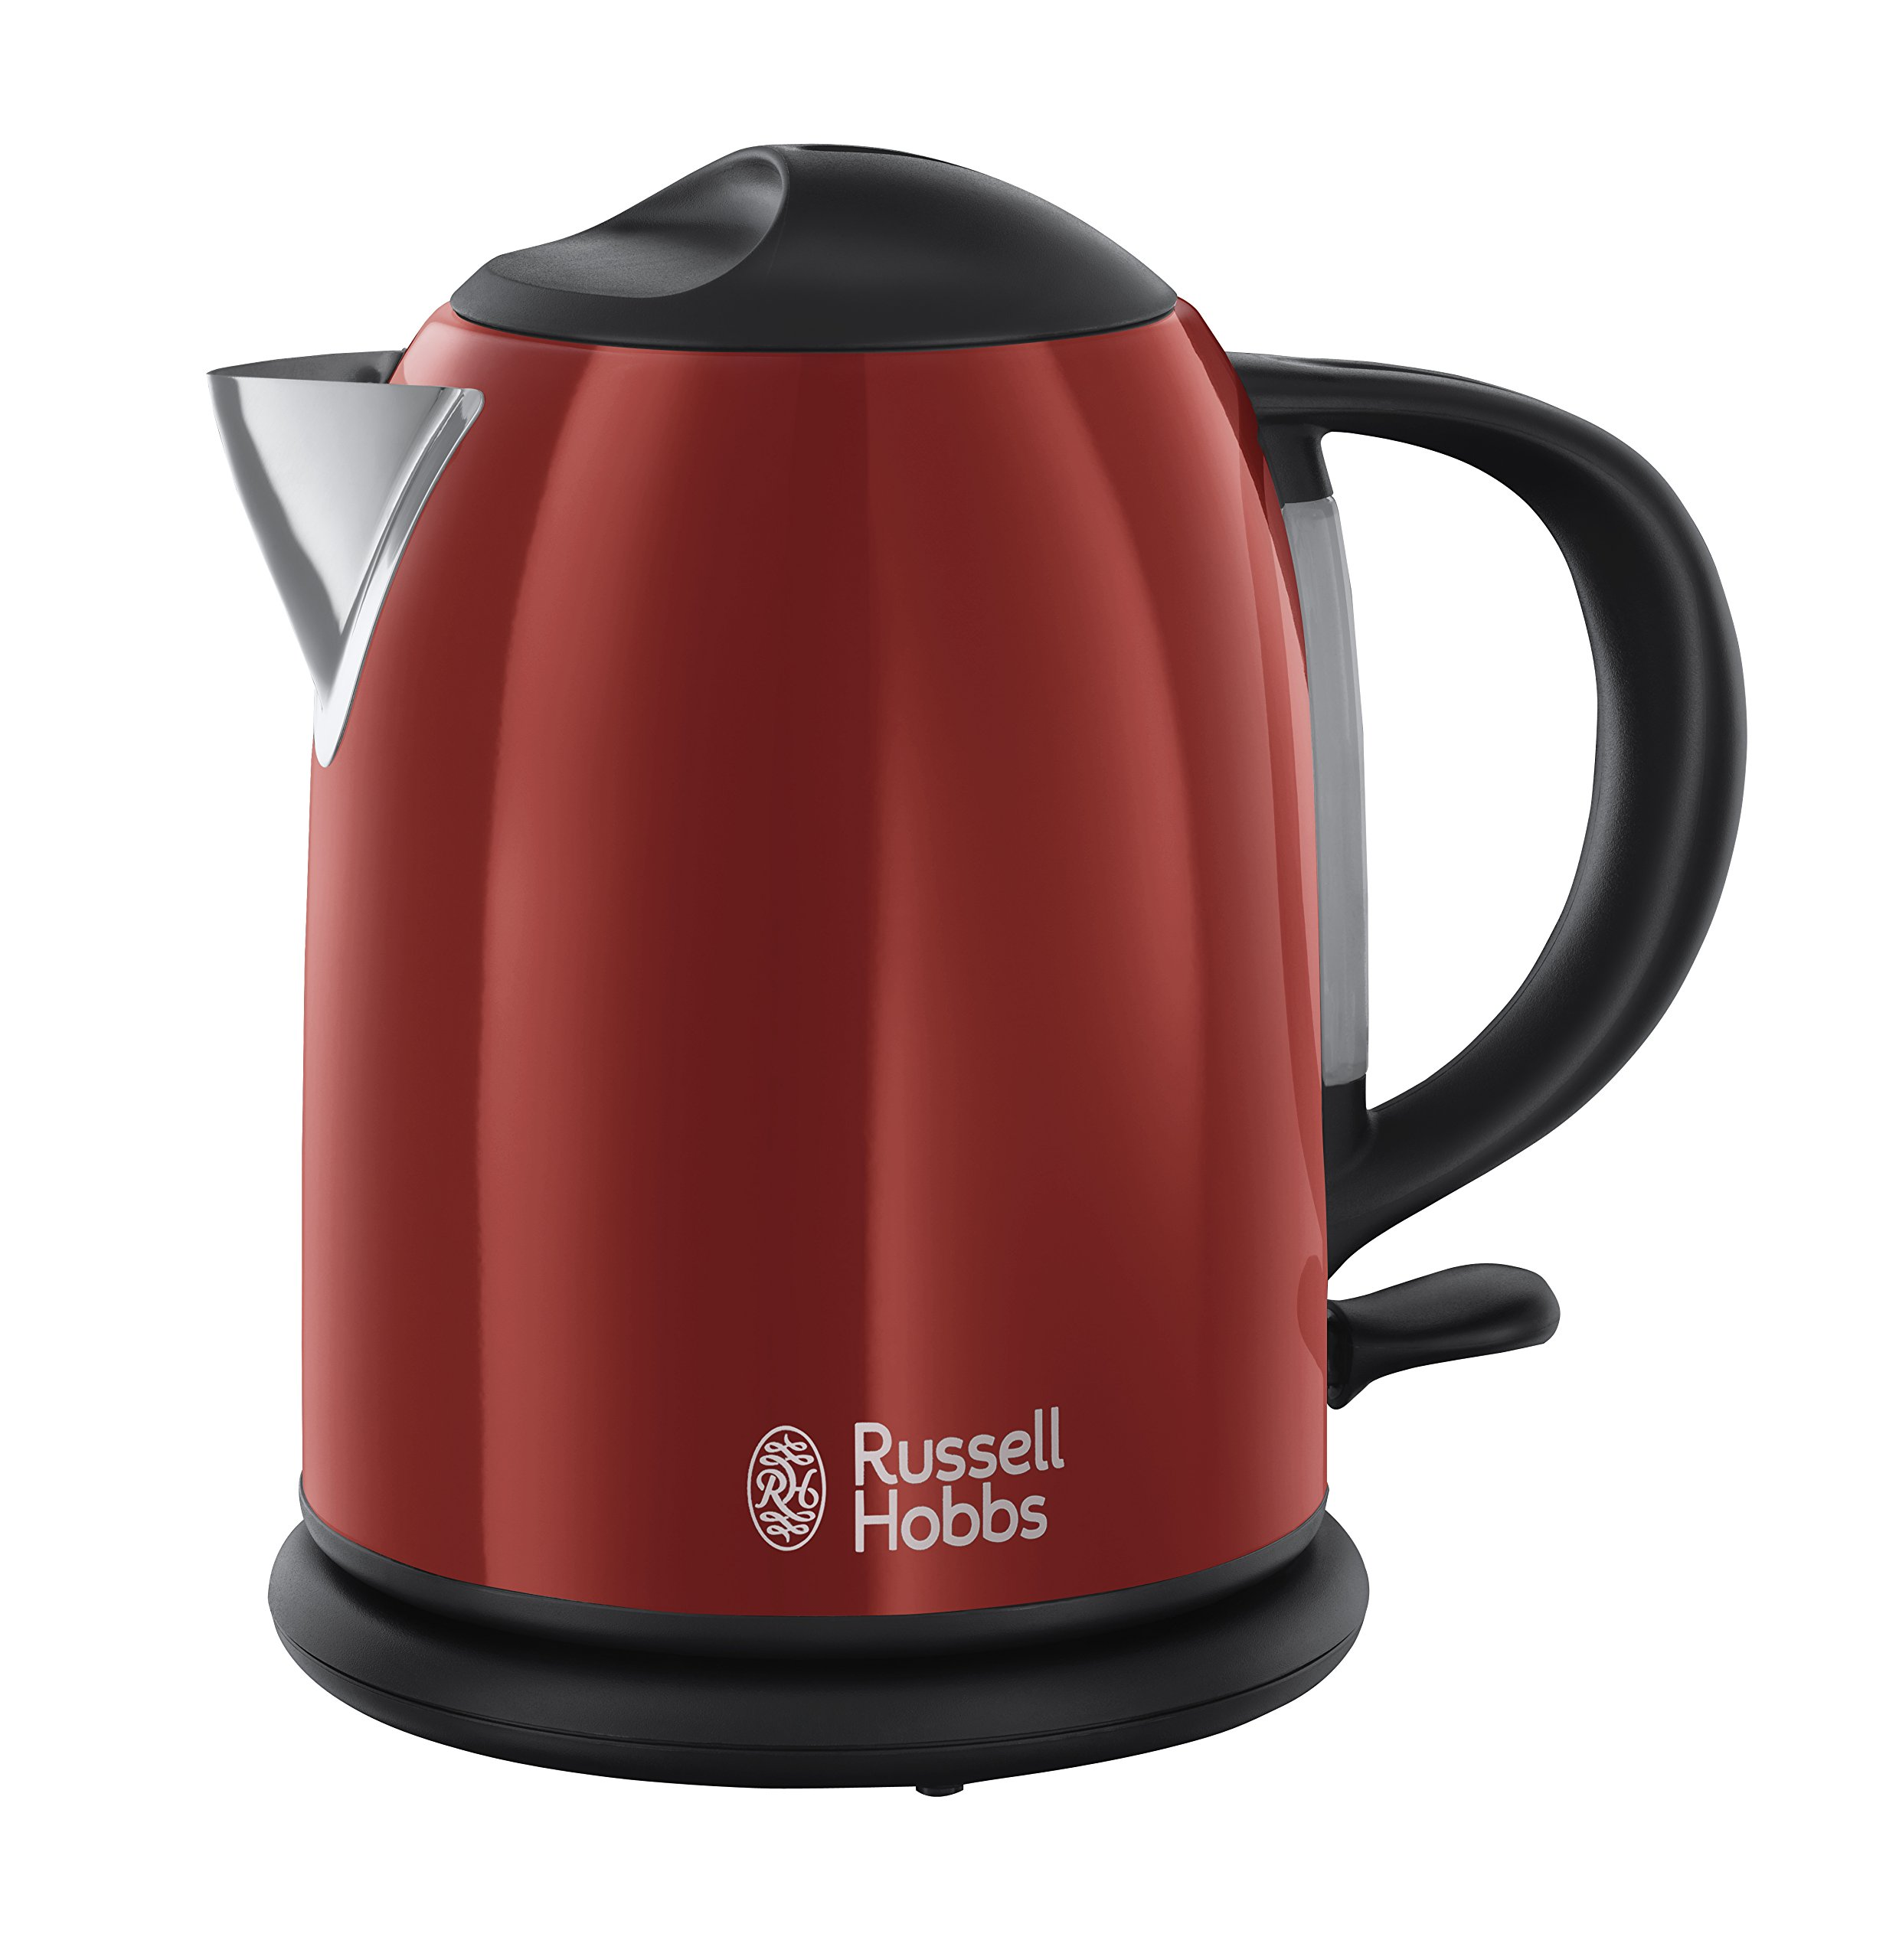 Russell Hobbs 20191-70 Colours Red - Hervidor de agua compacto, 1 l,